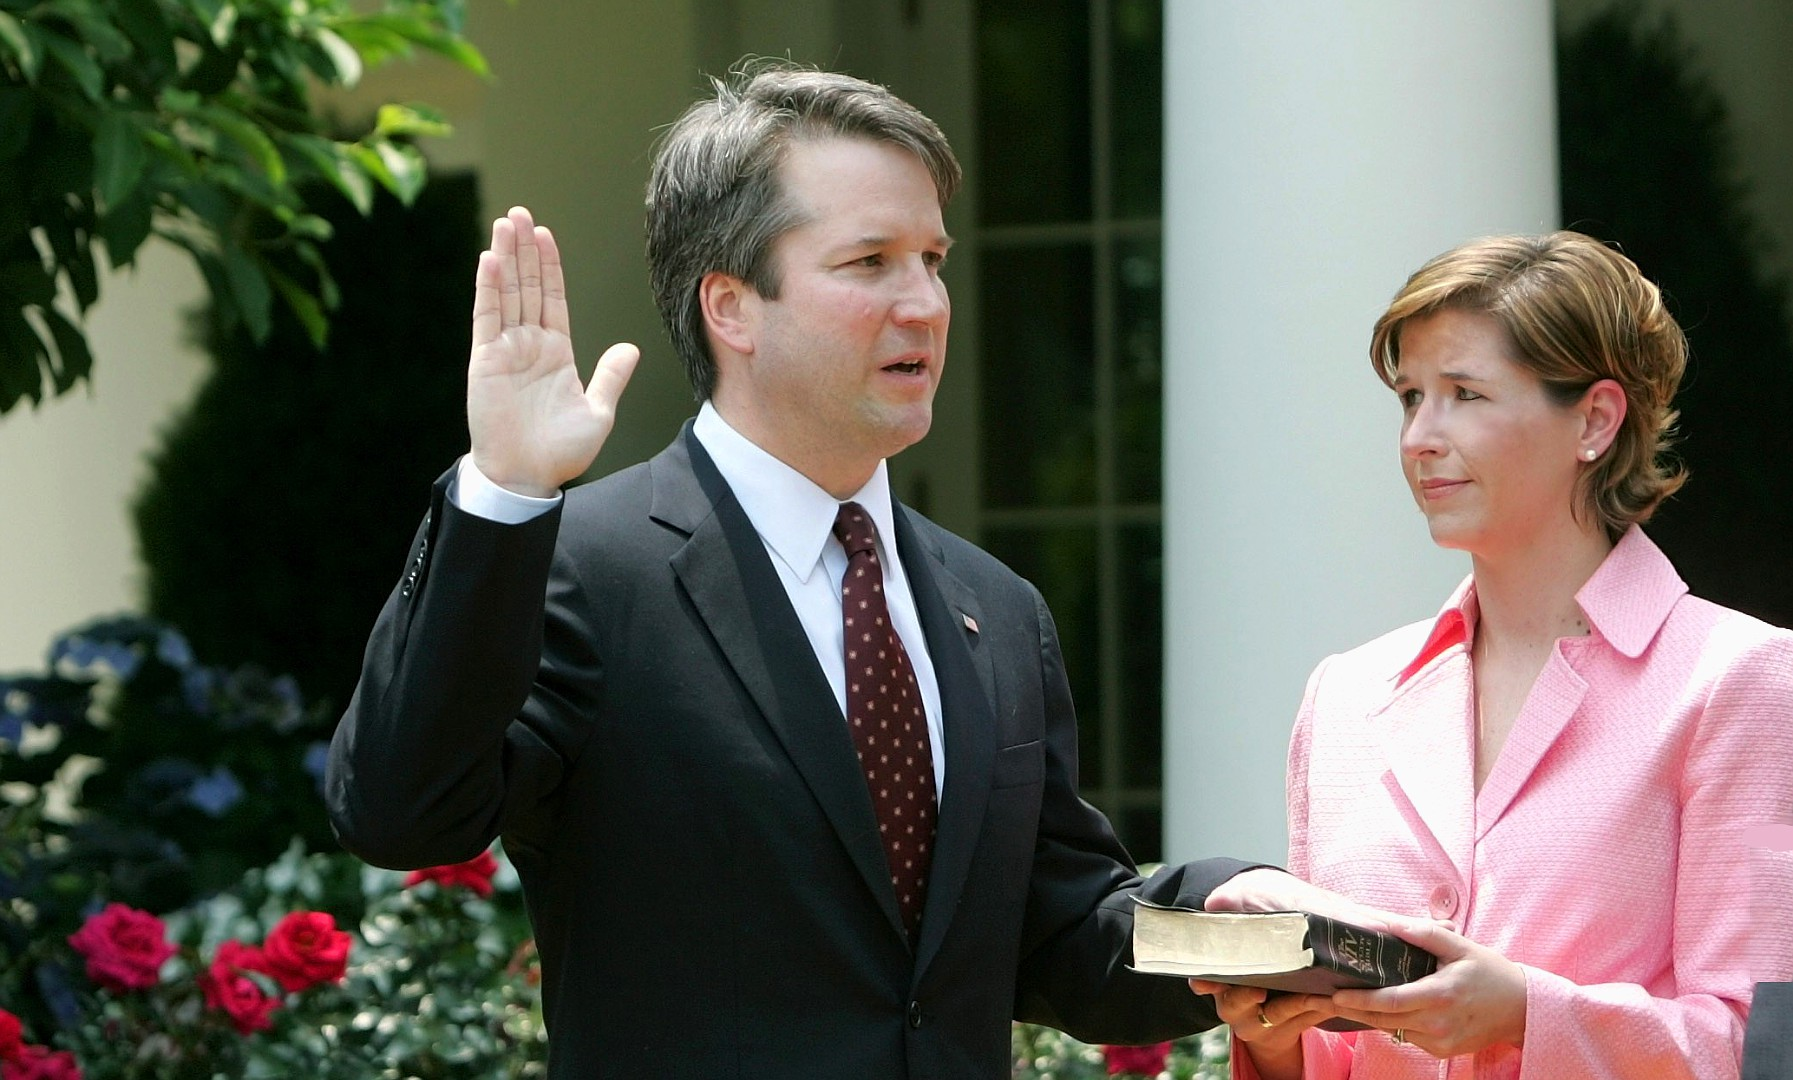 Brett Kavanaugh and Ashley Kavanaugh at the swearing in to the United States Court of Appeals for the D.C. Circuit Brett has his left hand on the bible Ashley is holding and he has his right hand raised he is in a dark suite and burgandy tie and Ashley is wearing a pink skirt suit, she looks very attractive.